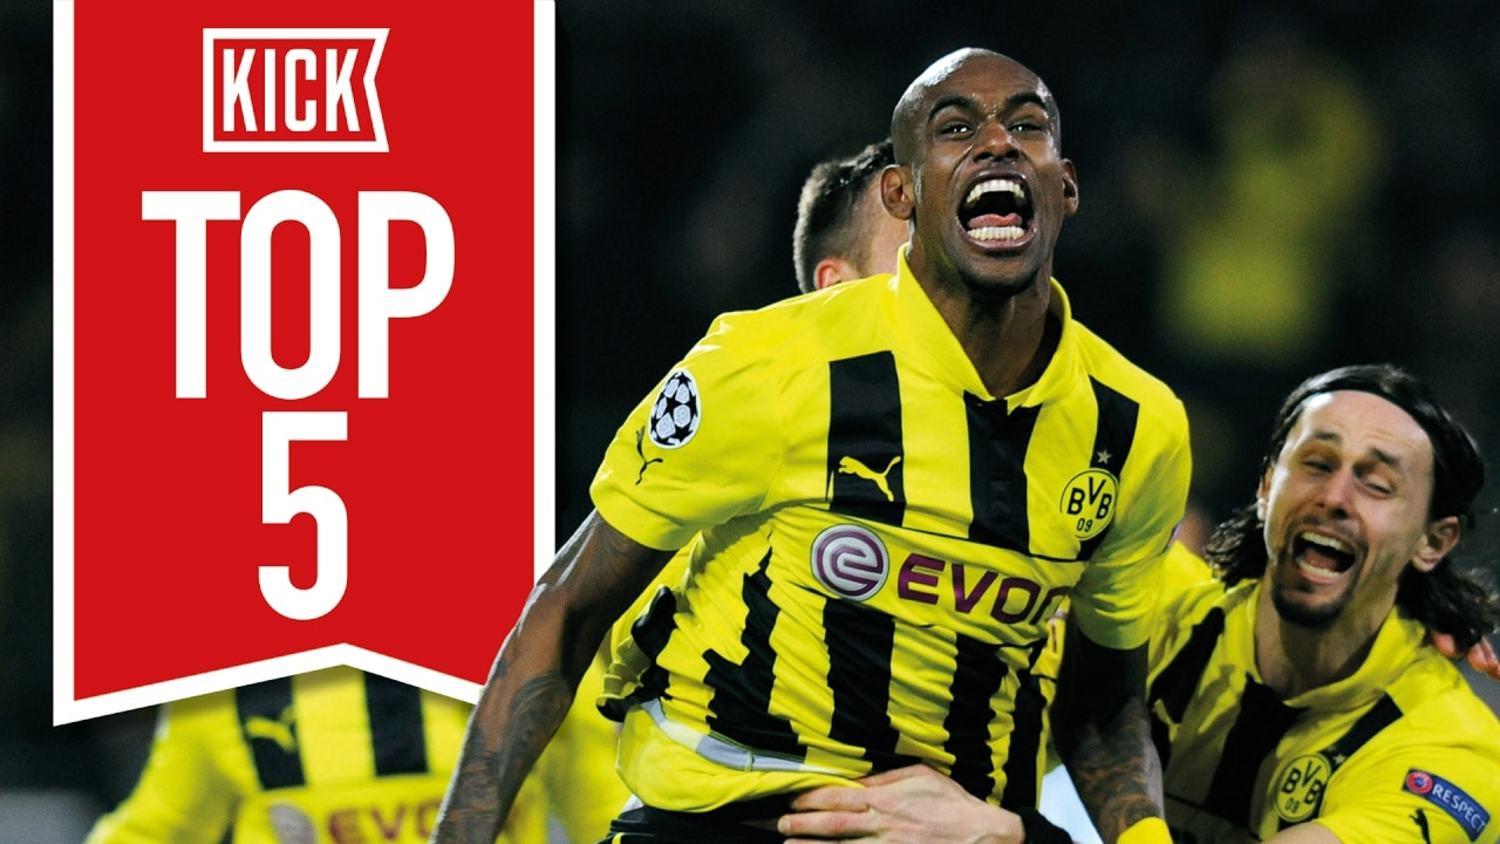 Top 5 Epic UCL Knockout Round Clashes